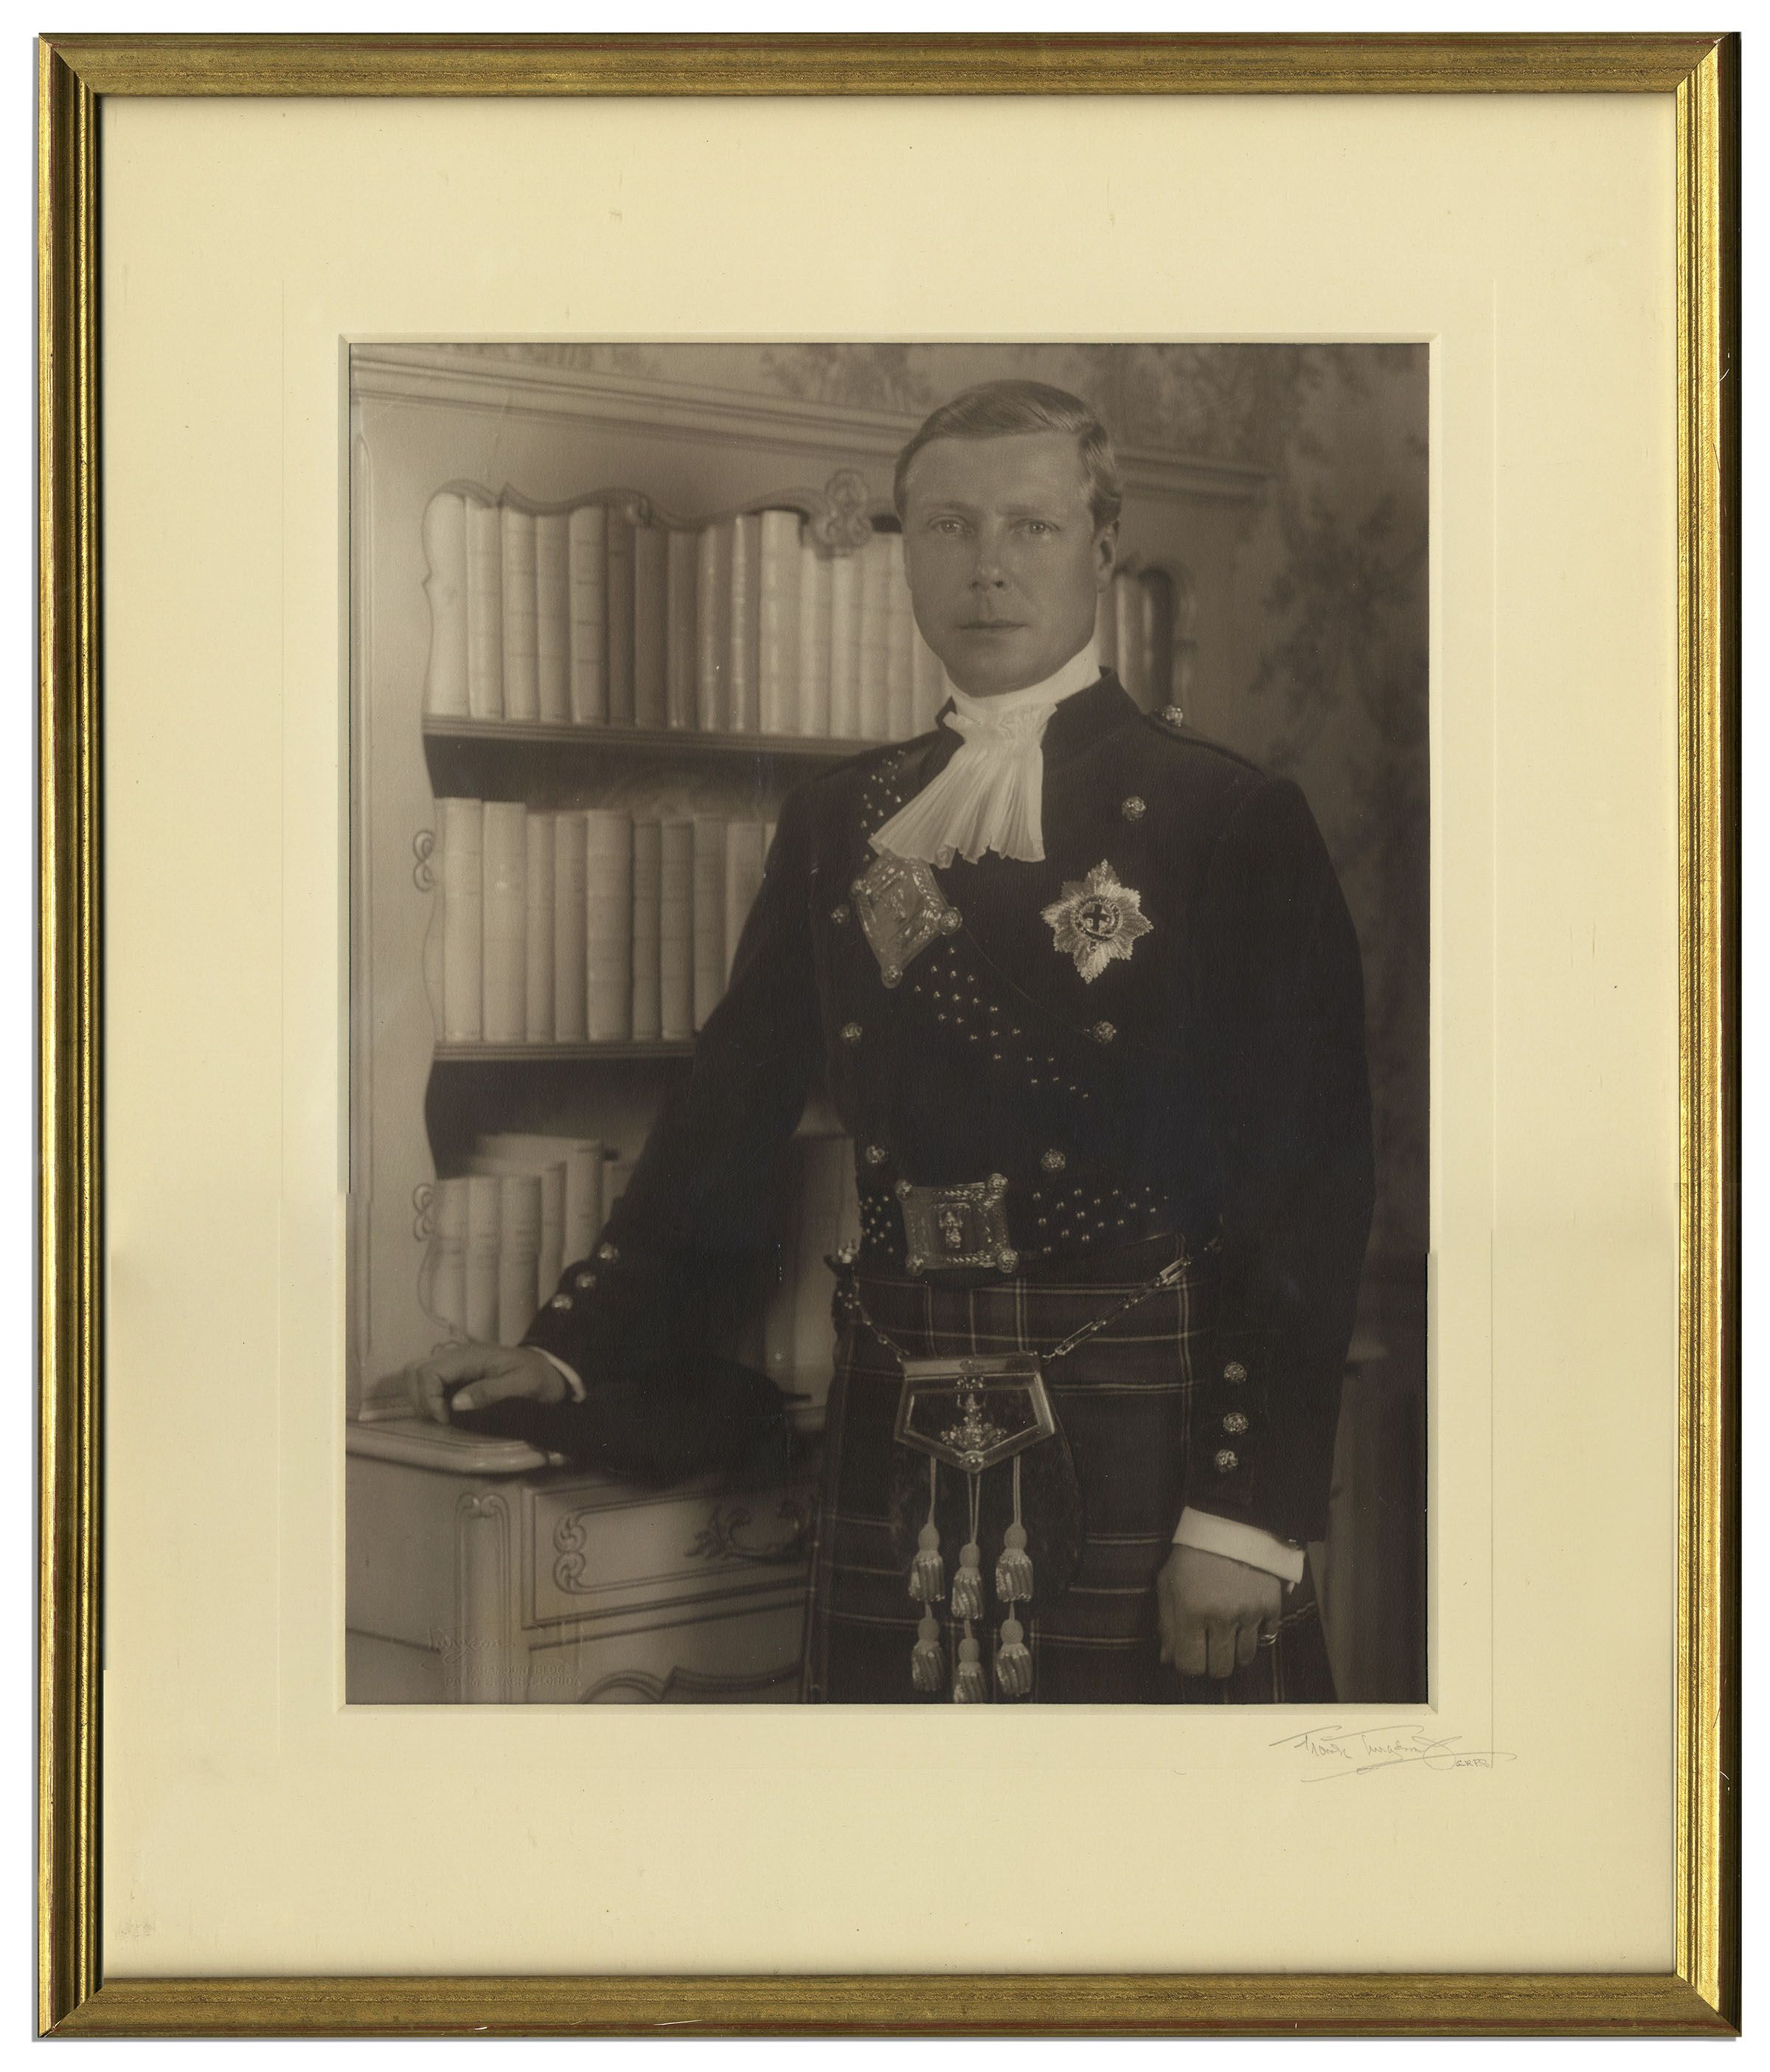 King Edward Memorabilia King Edward VIII Photograph Owned by Edward & Wallis -- From The Famous Sotheby's 1997 Auction of Property of The Duke & Duchess of Windsor